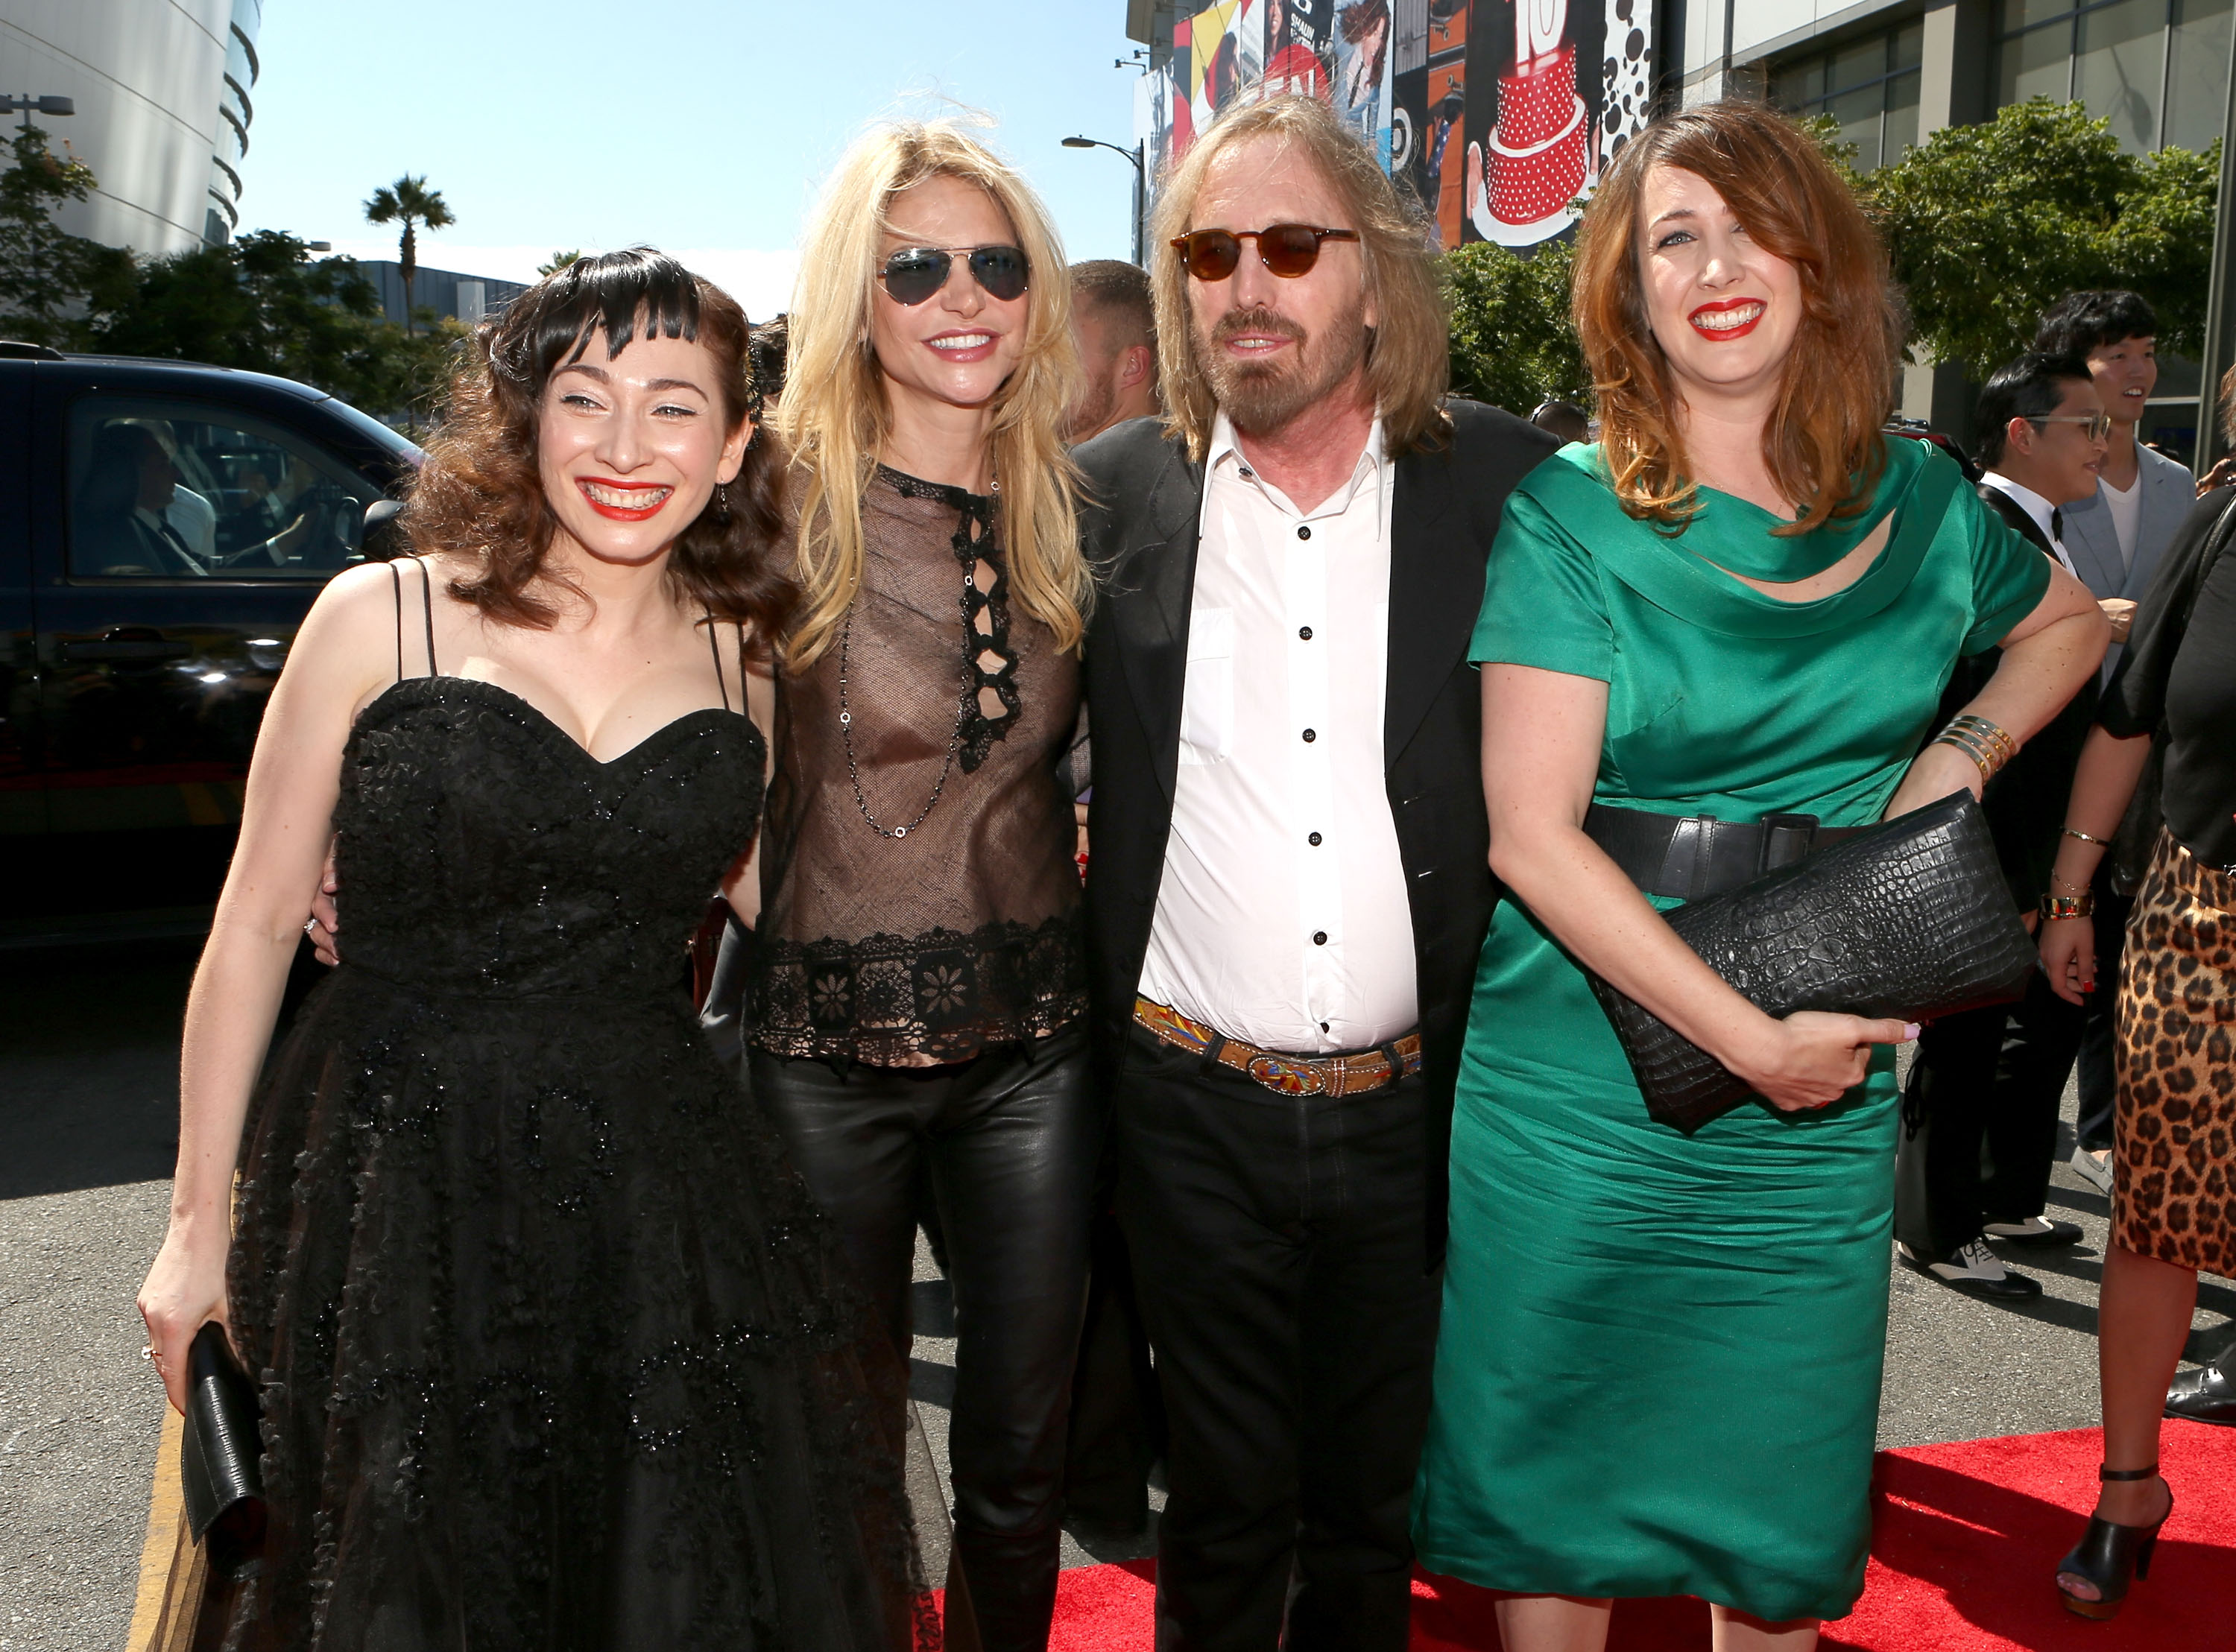 (L-R) Musician Regina Spektor, Dana York, musician Tom Petty and Adria Petty arrive at the 2012 MTV Video Music Awards at Staples Center on September 6, 2012 in Los Angeles, California. (Photo by Christopher Polk/Getty Images)